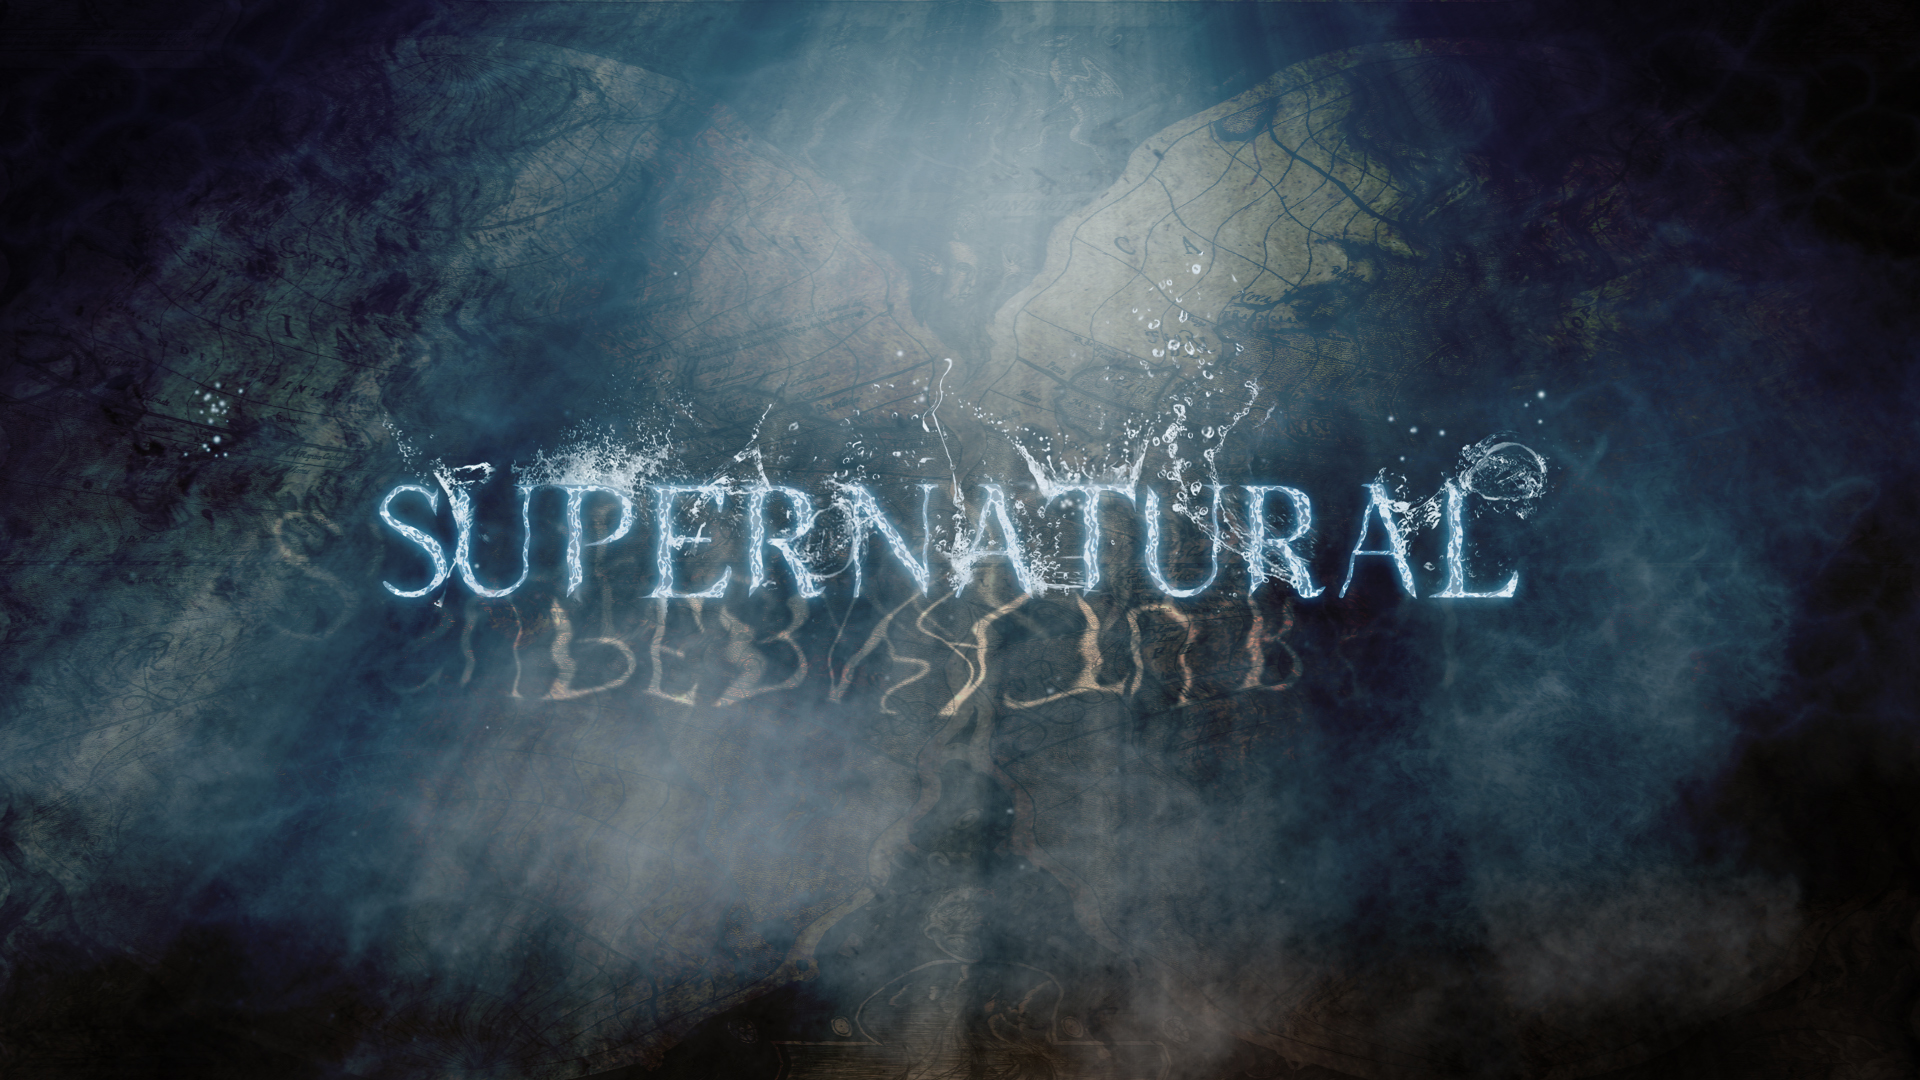 hd supernatural desktop wallpapers 1920x1080 sam and dean 1920x1080